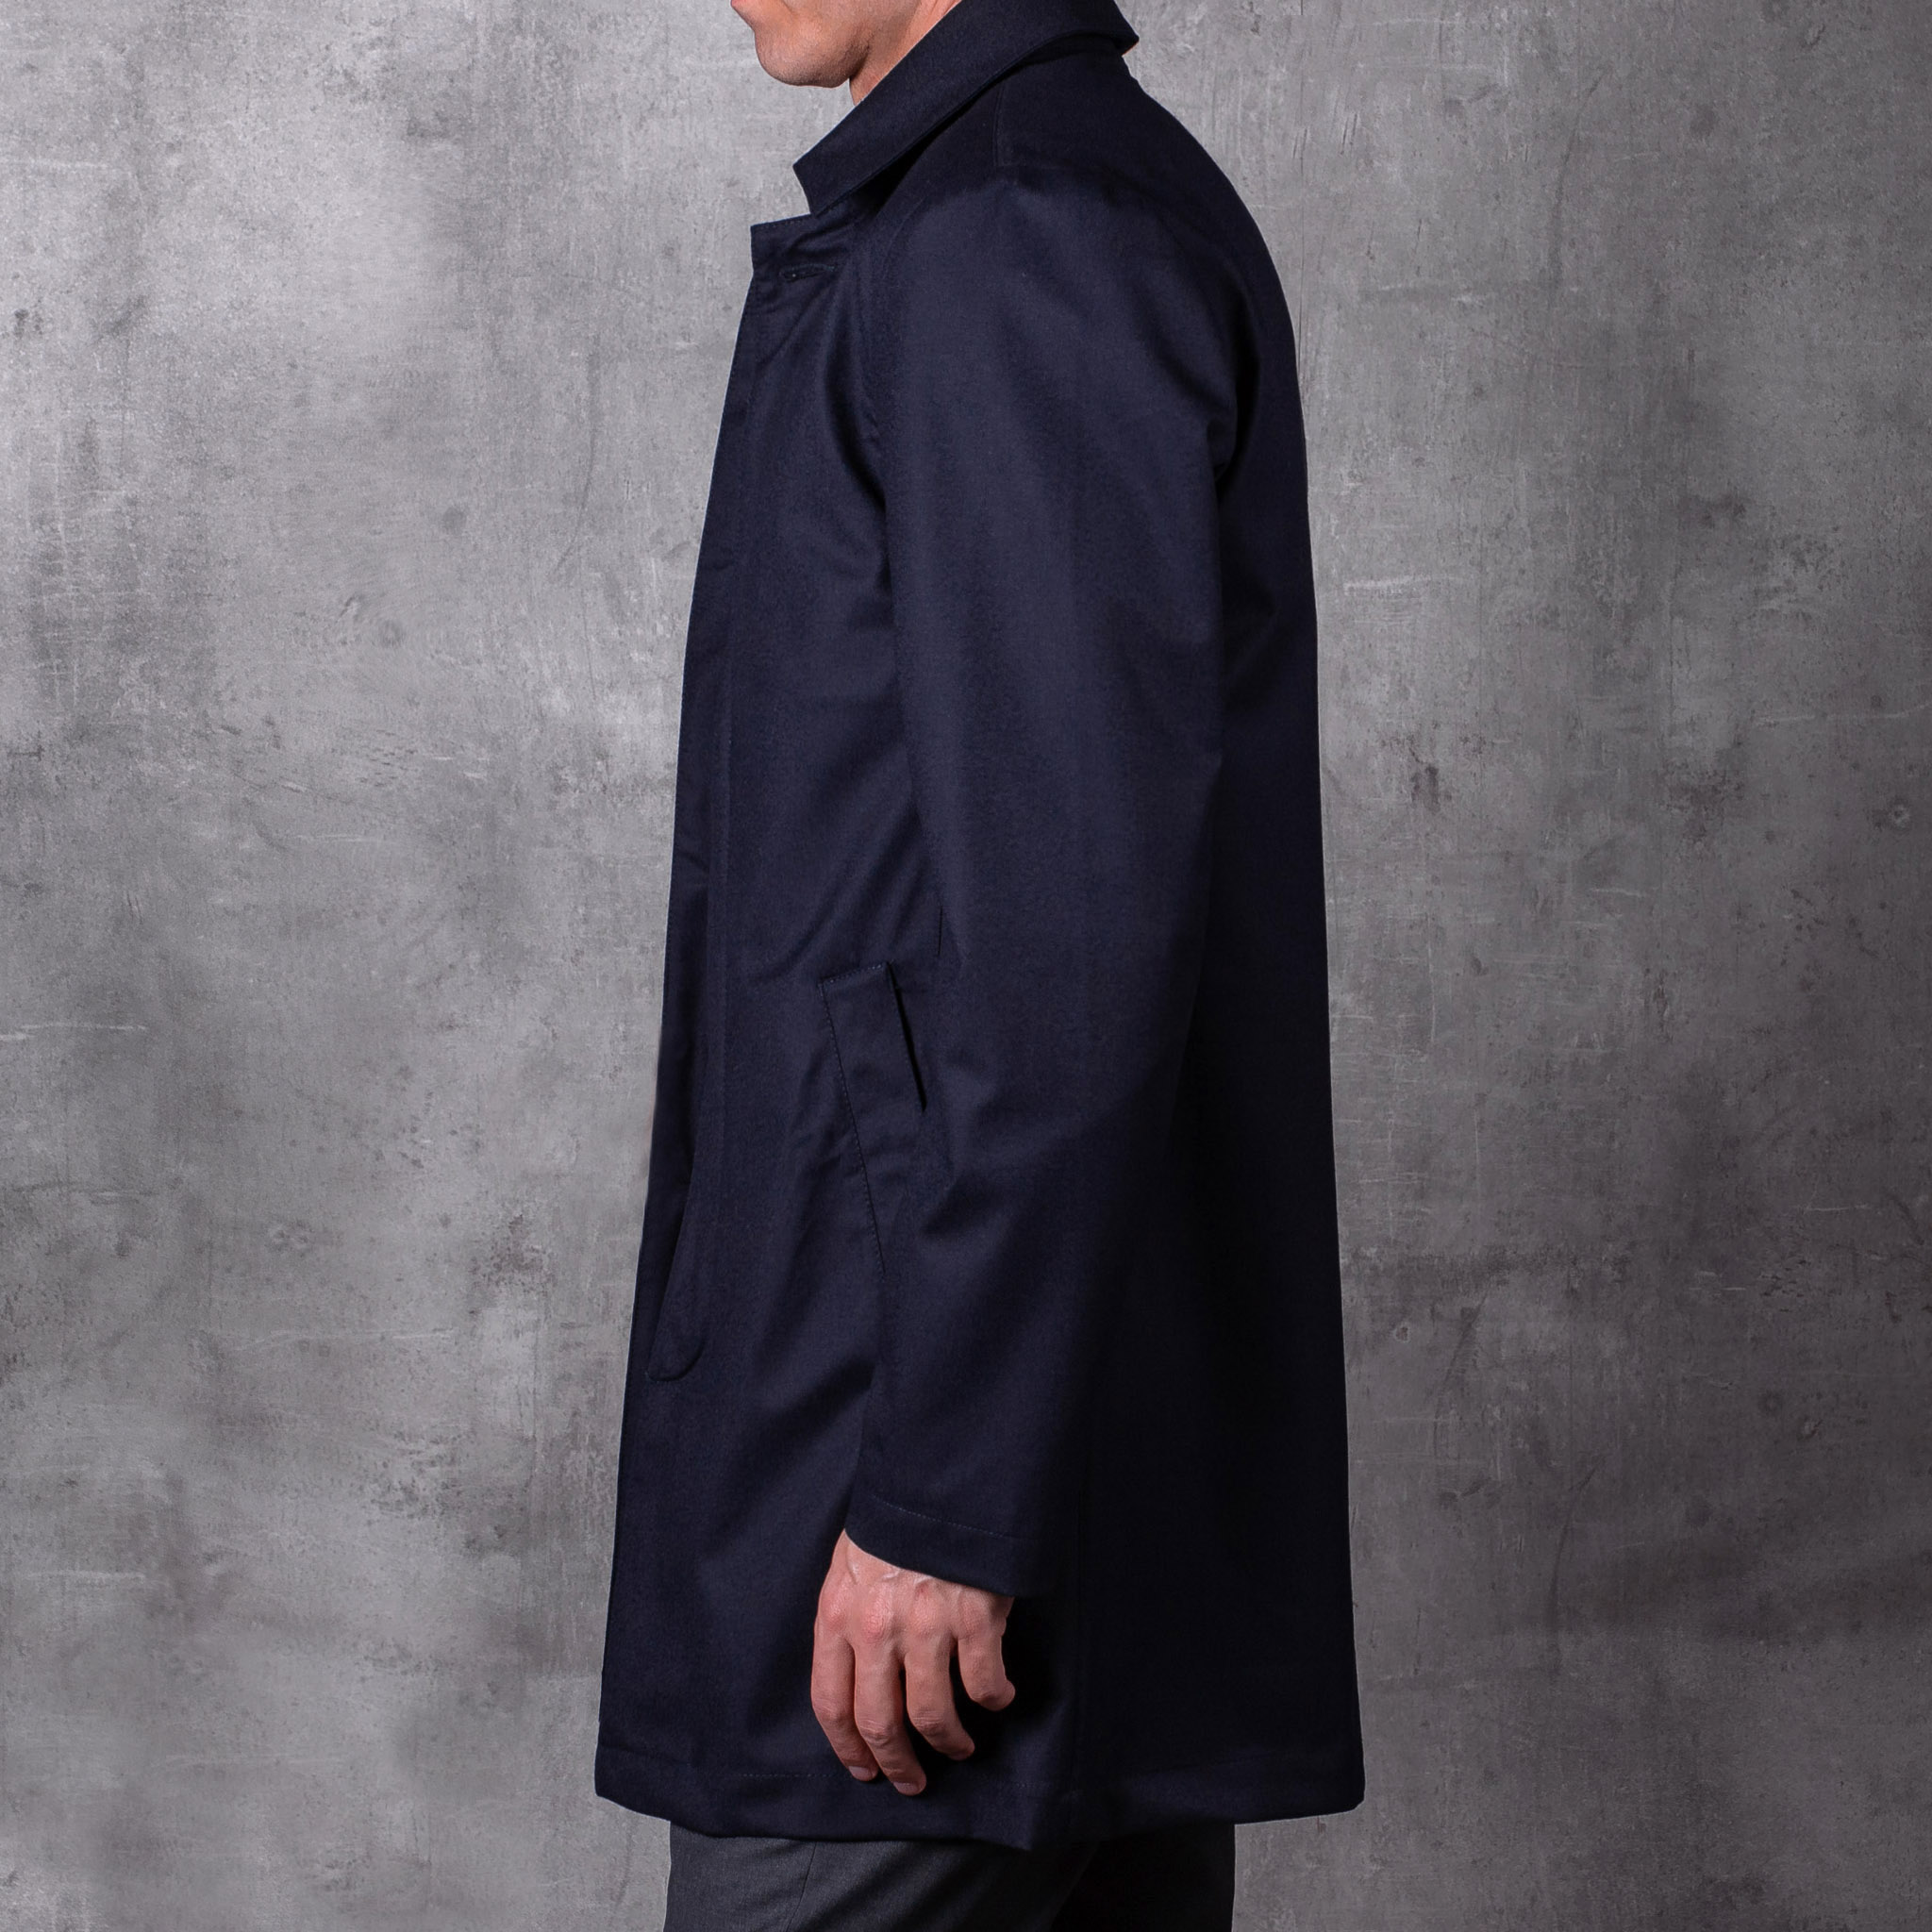 RAINCOAT-GABARDINA-01-01-The-Seelk-2